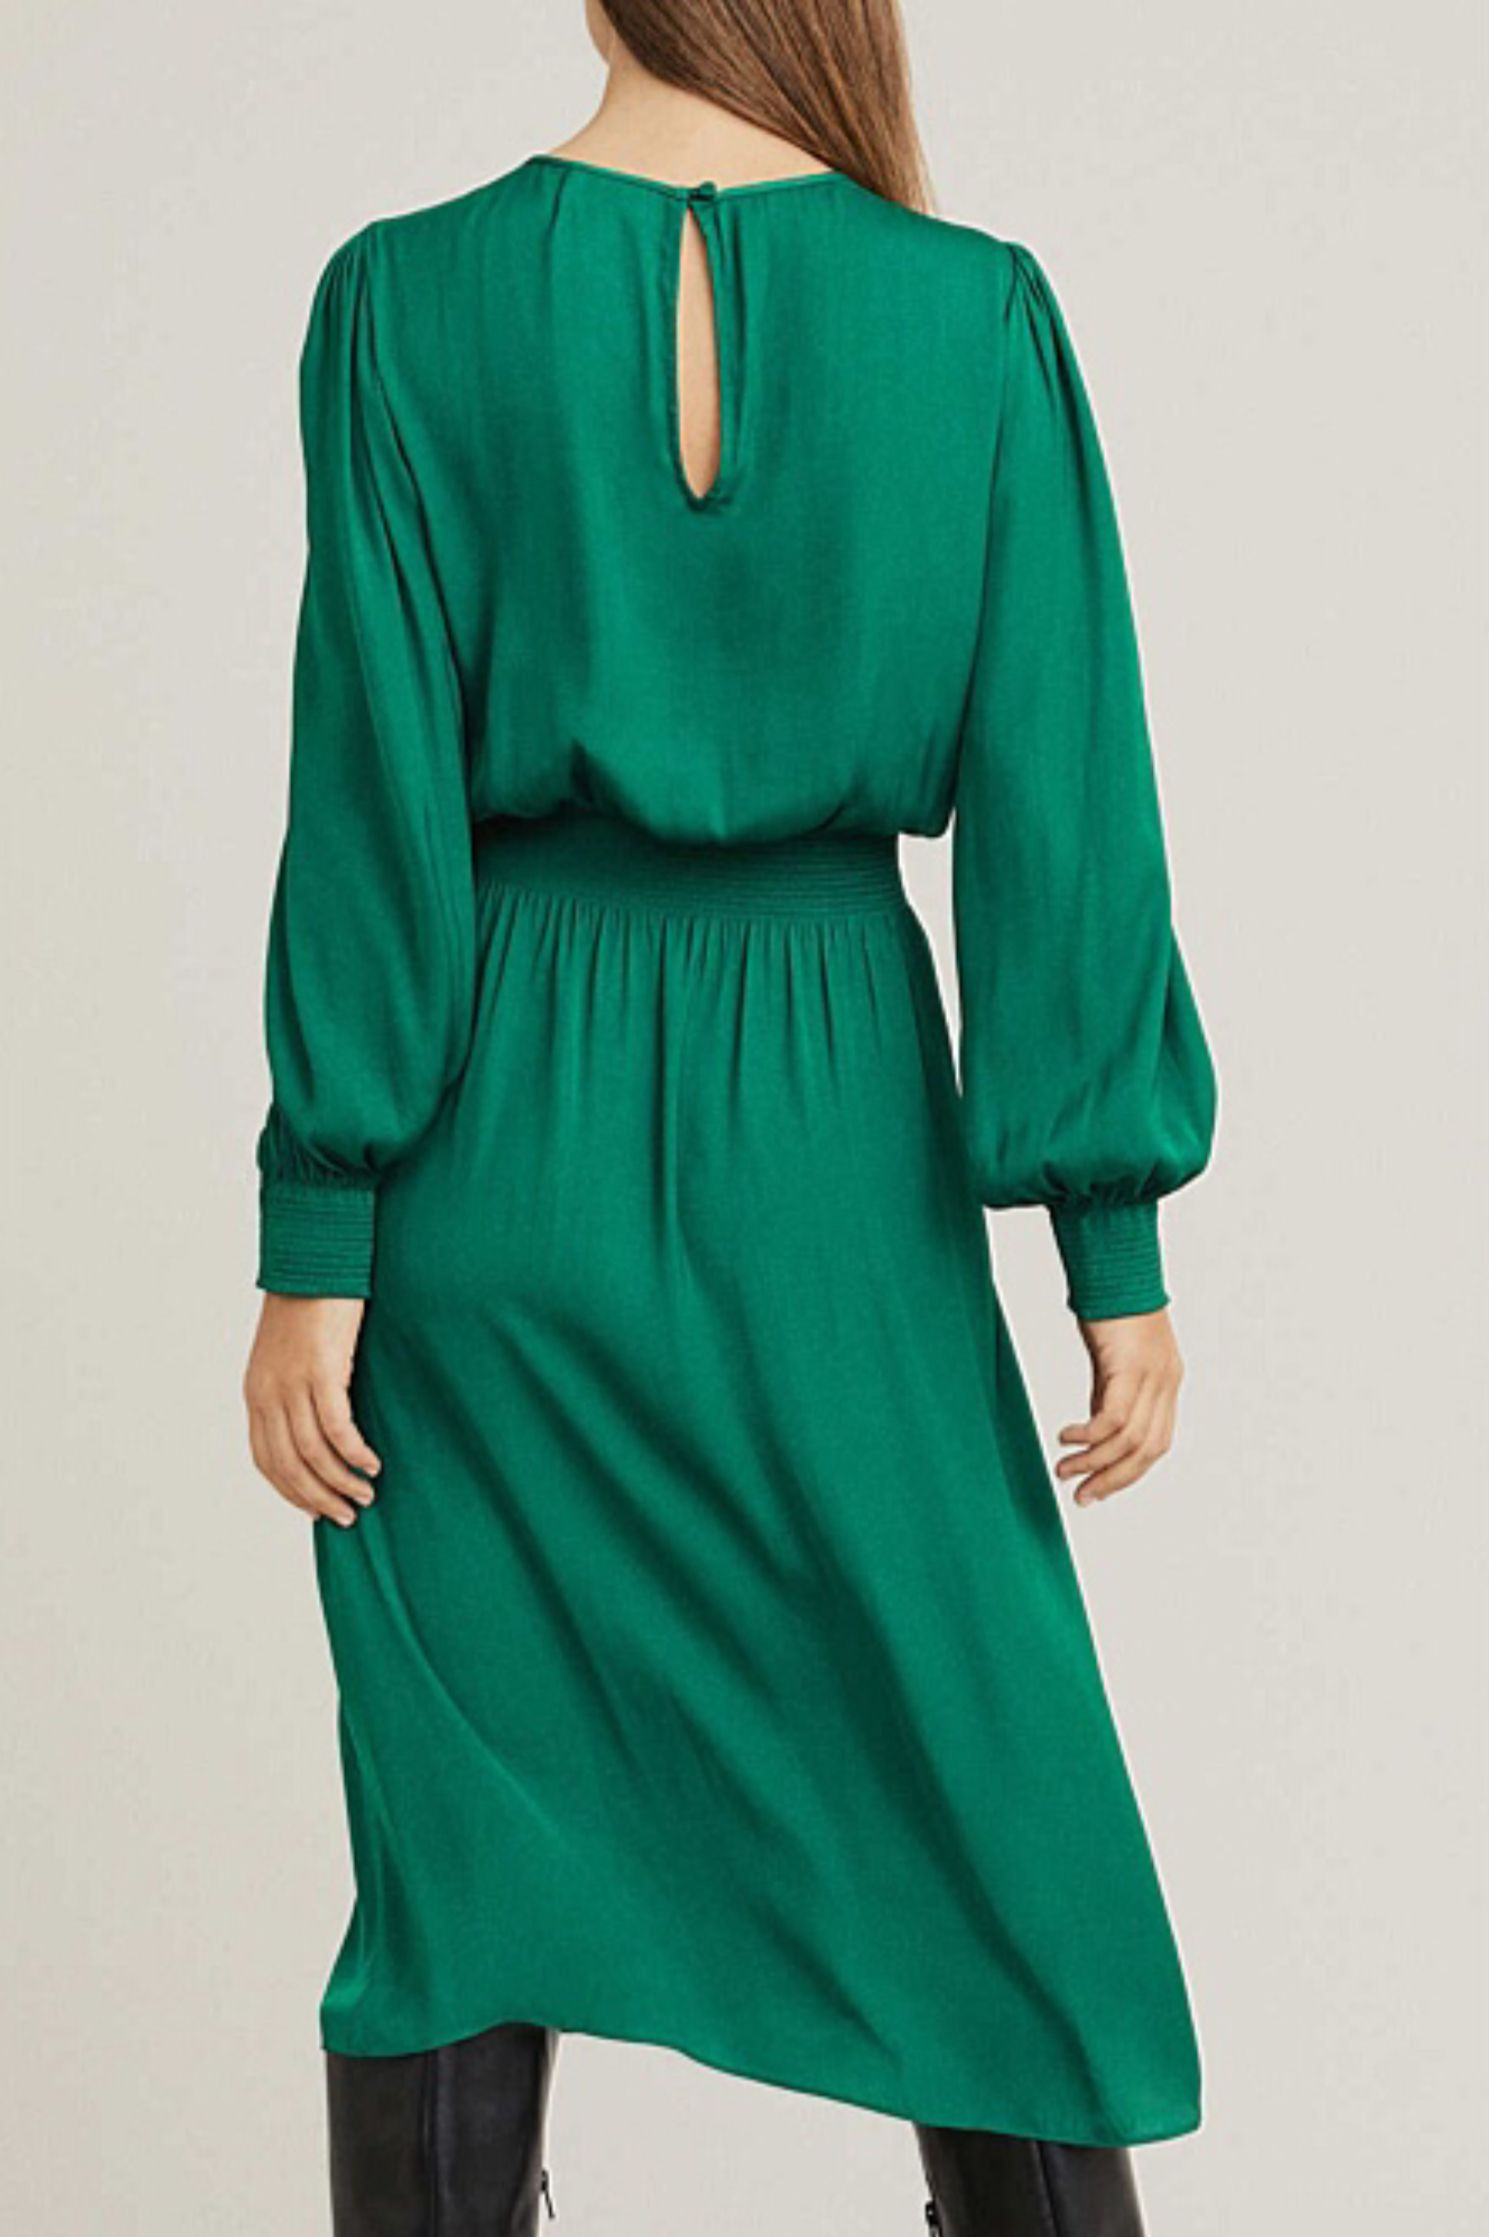 Witchery Bottle Green Shirred Midi Dress Dresses With Sleeves Dresses Long Sleeve Dress [ 2237 x 1489 Pixel ]